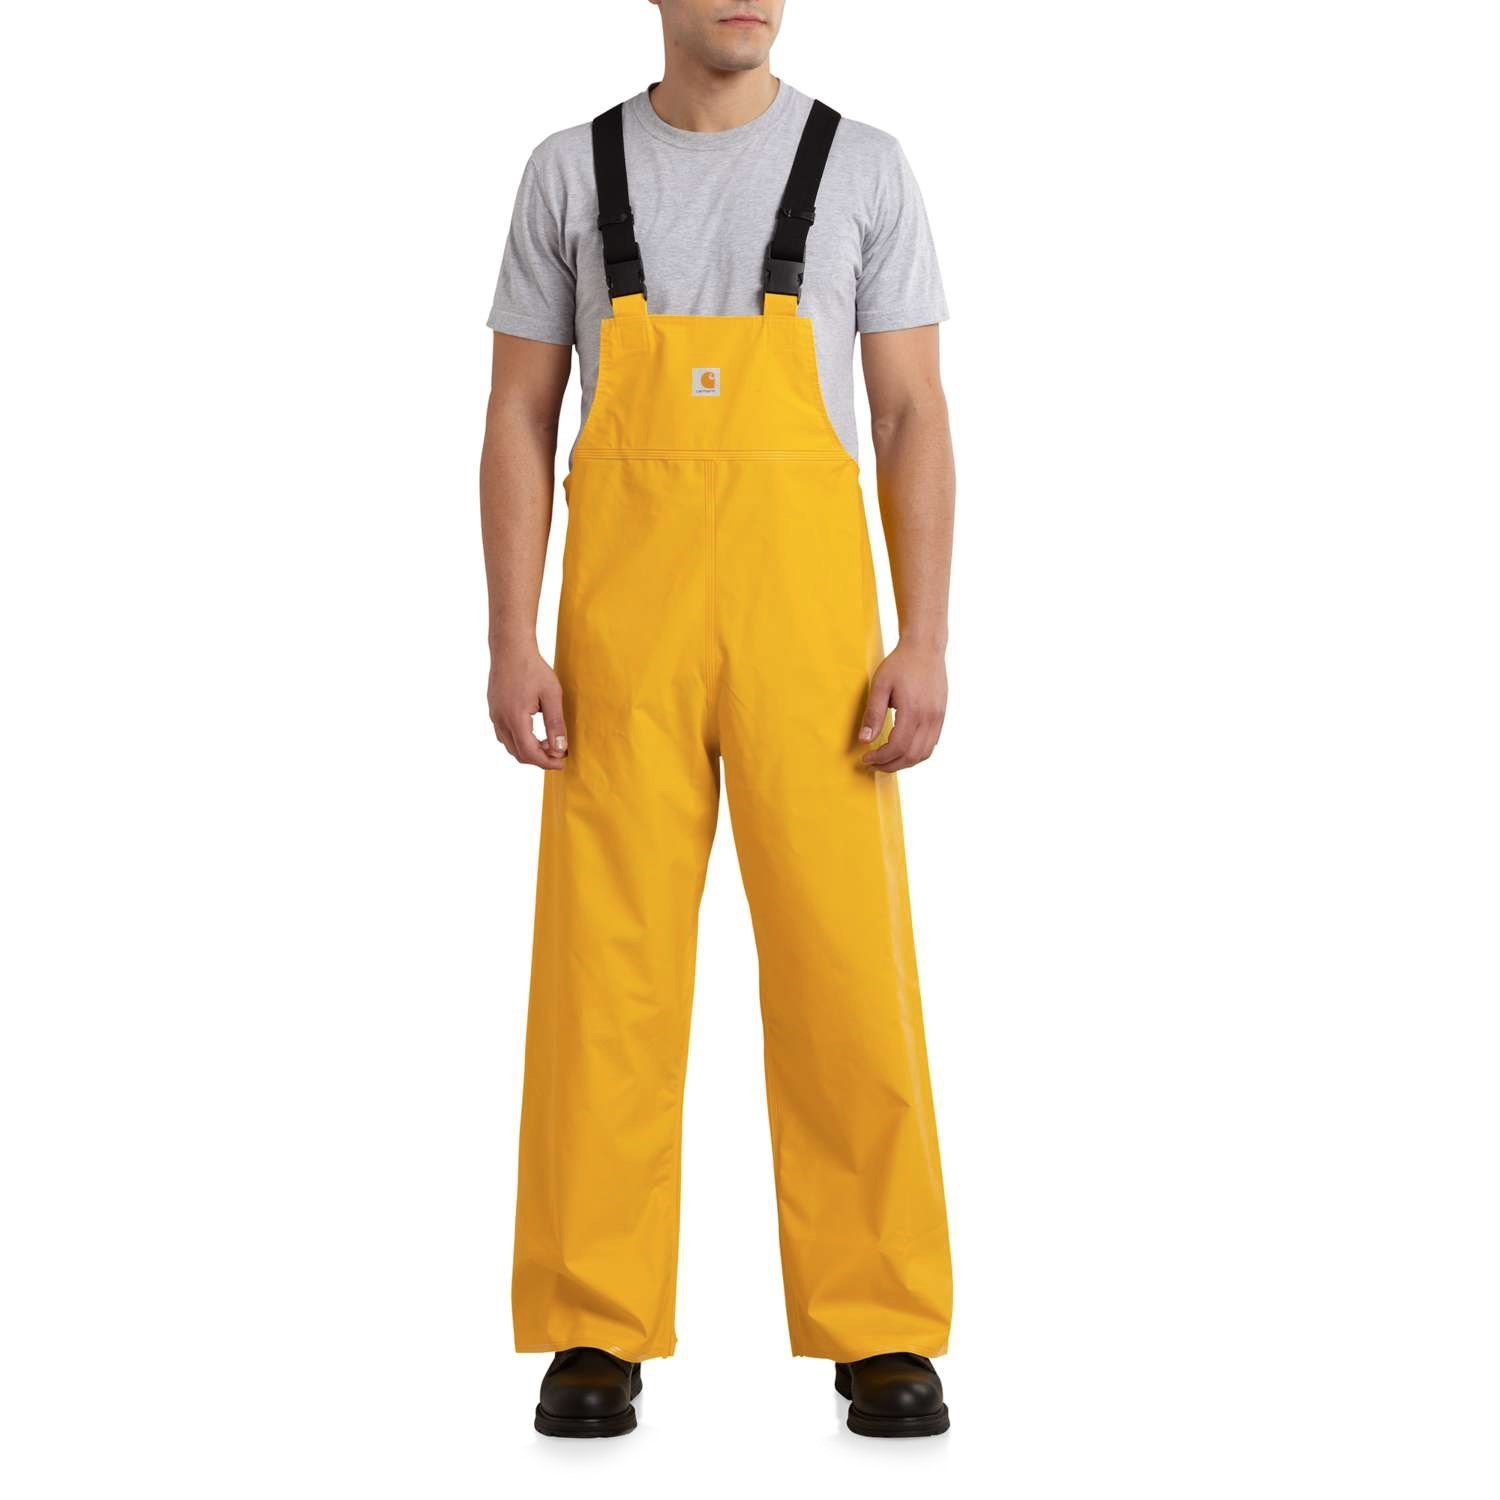 382f59f56 Carhartt 101075 Mayne Bib Overalls (For Men)